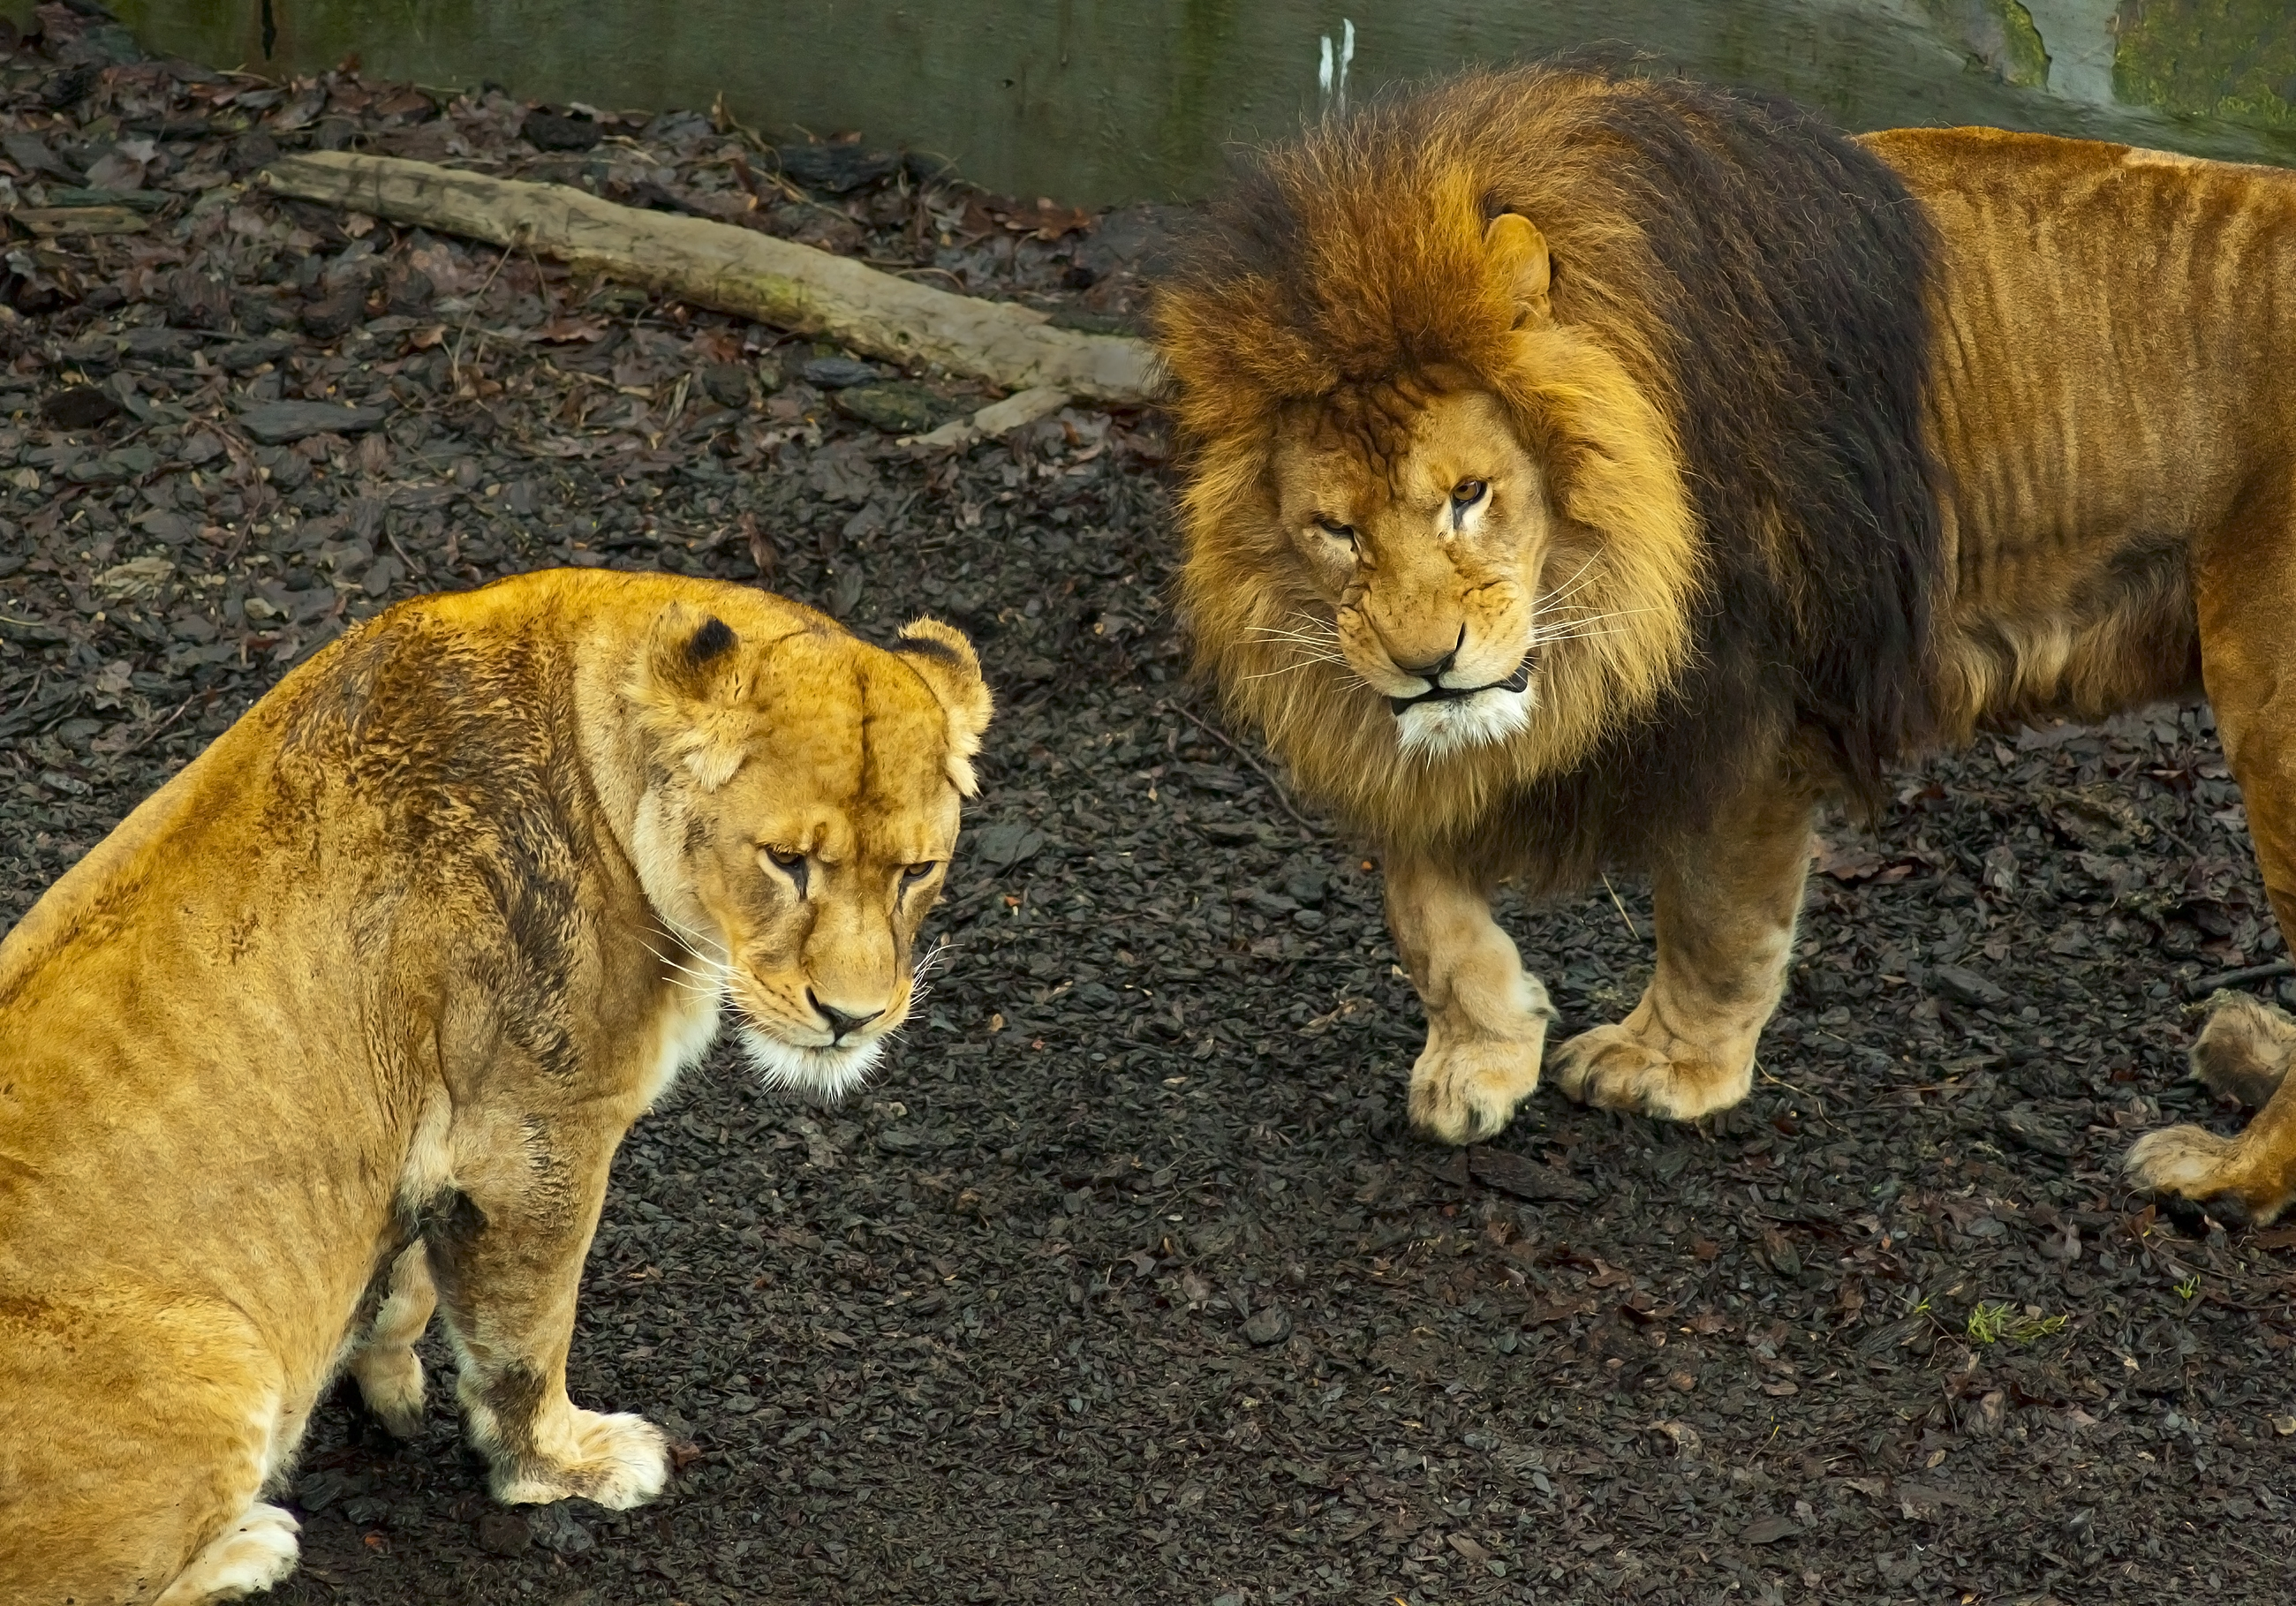 61700 download wallpaper Animals, Lion, Lioness, Stroll, Predator screensavers and pictures for free